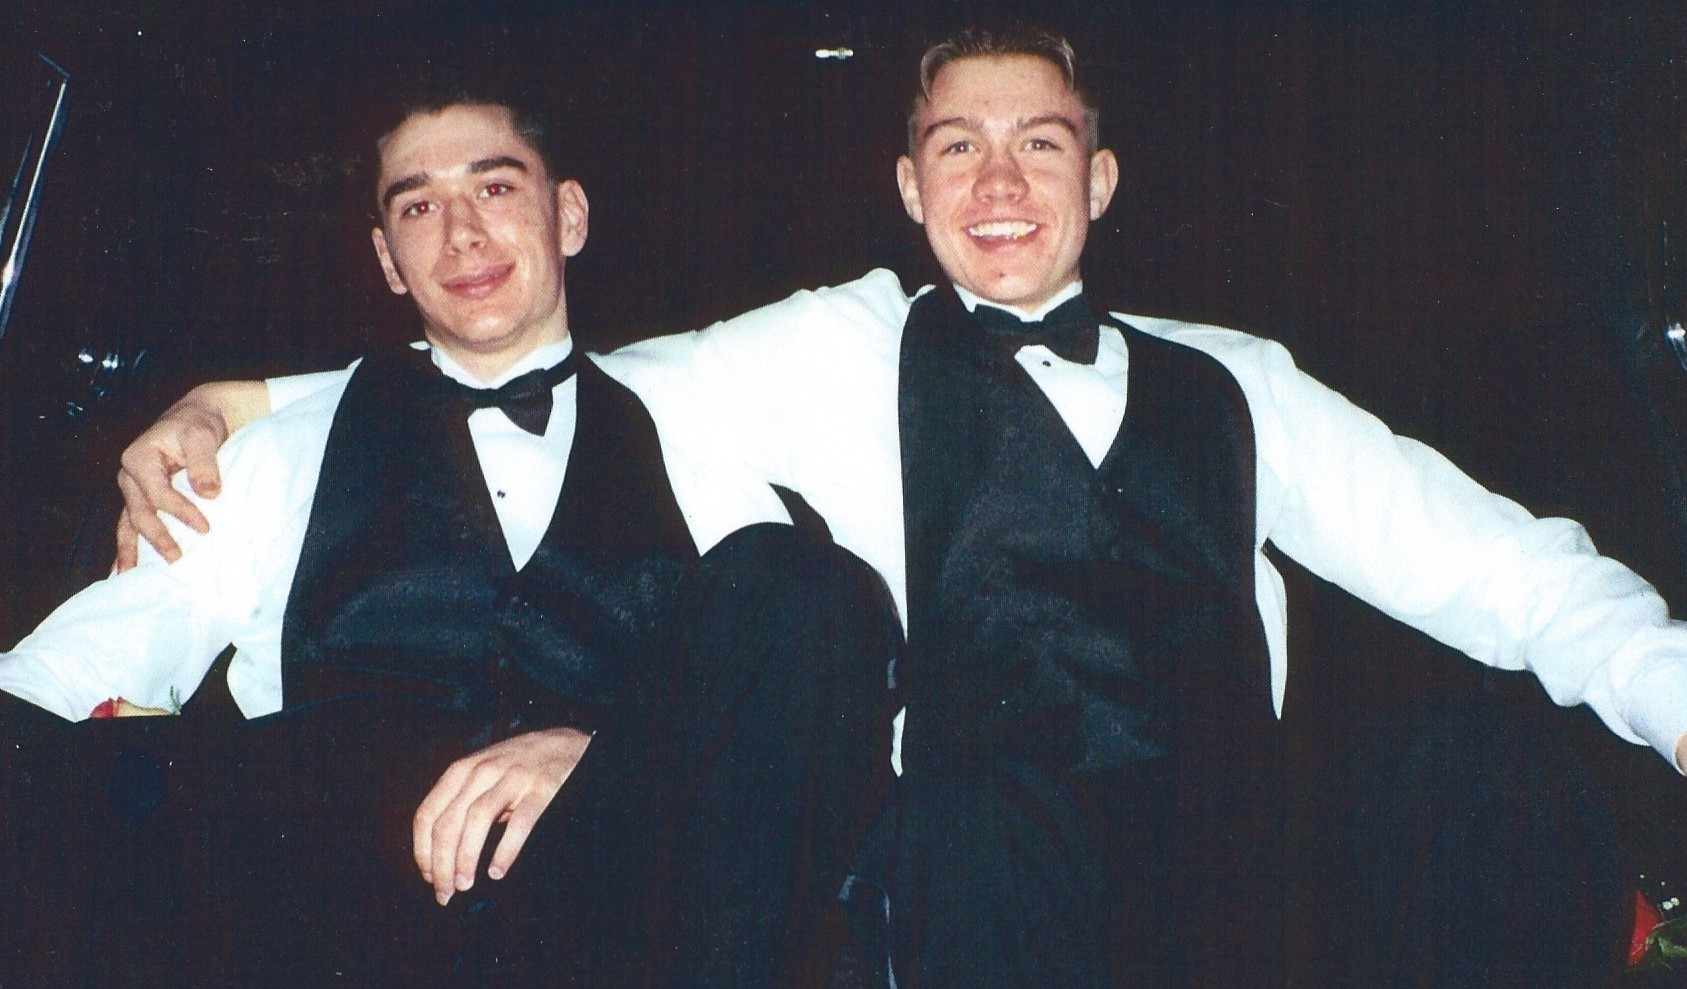 Geik Baxter, left, and Mark Hilde the night of the prom at Edmonds-Woodway High School. / Baxter amily collection